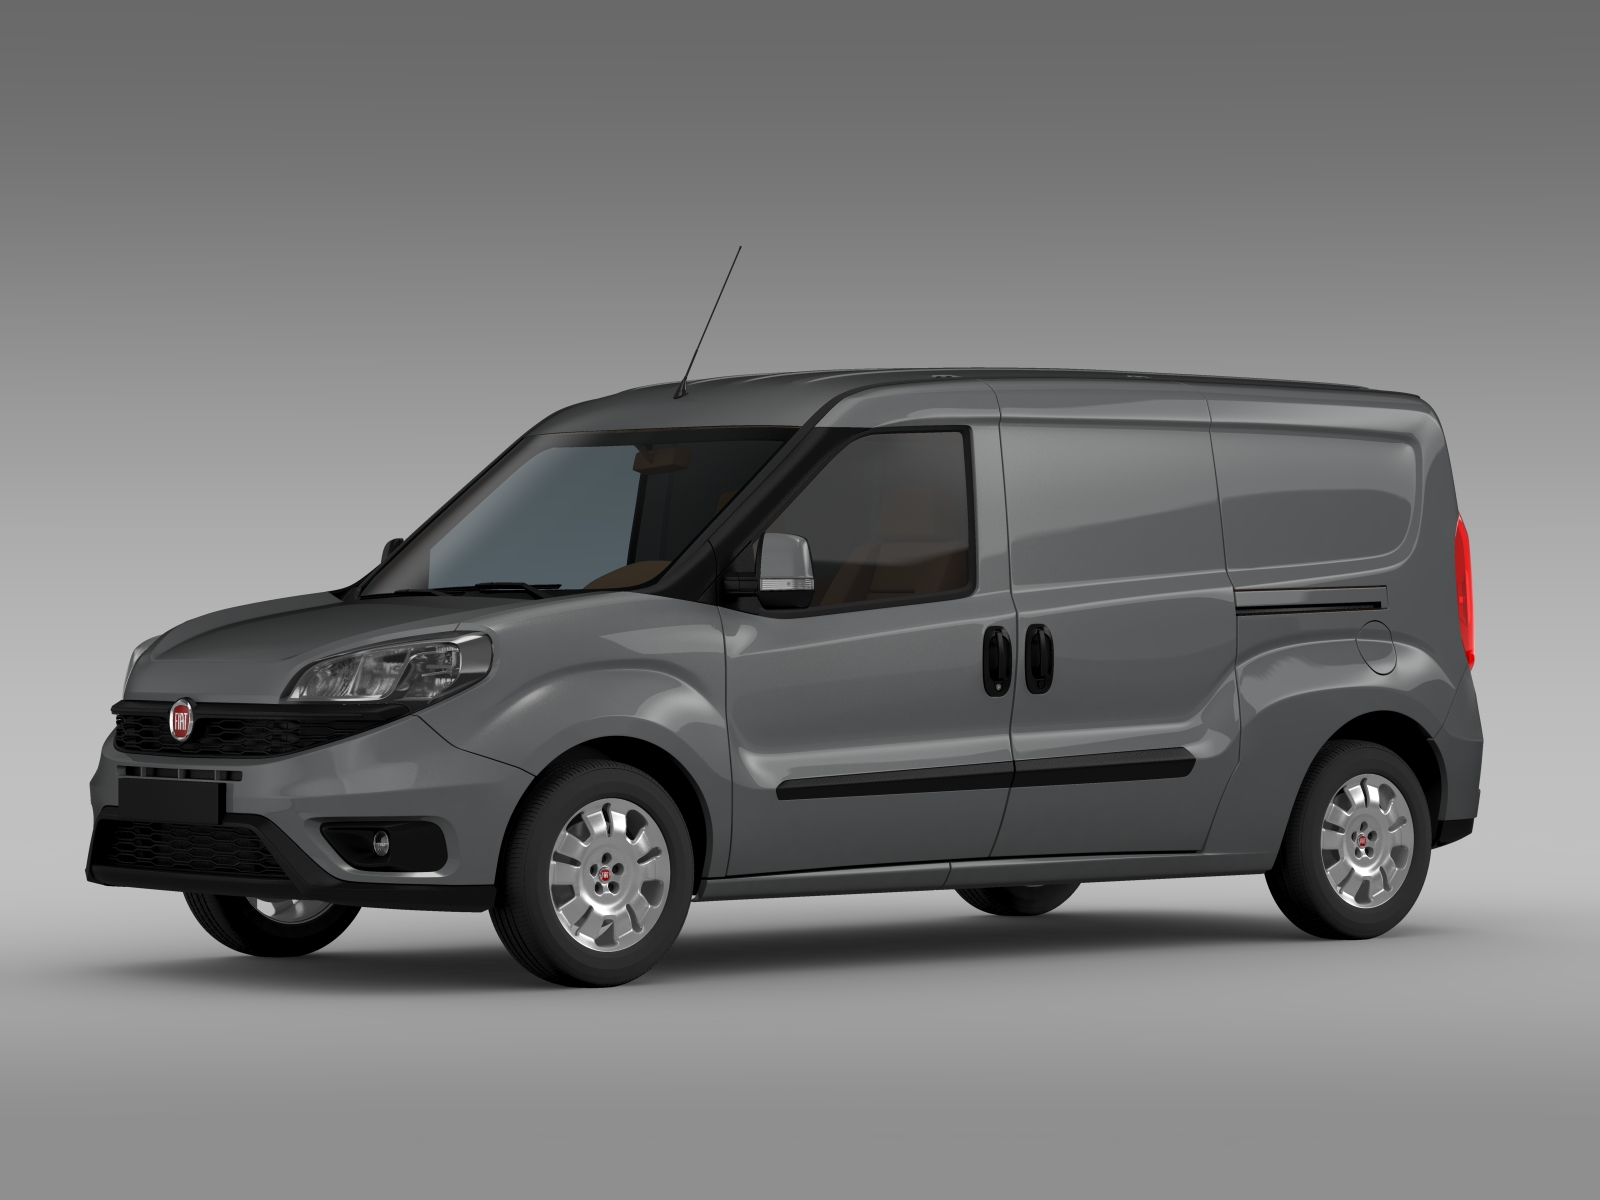 fiat doblo cargo maxi 263 2015 3d model buy fiat doblo. Black Bedroom Furniture Sets. Home Design Ideas